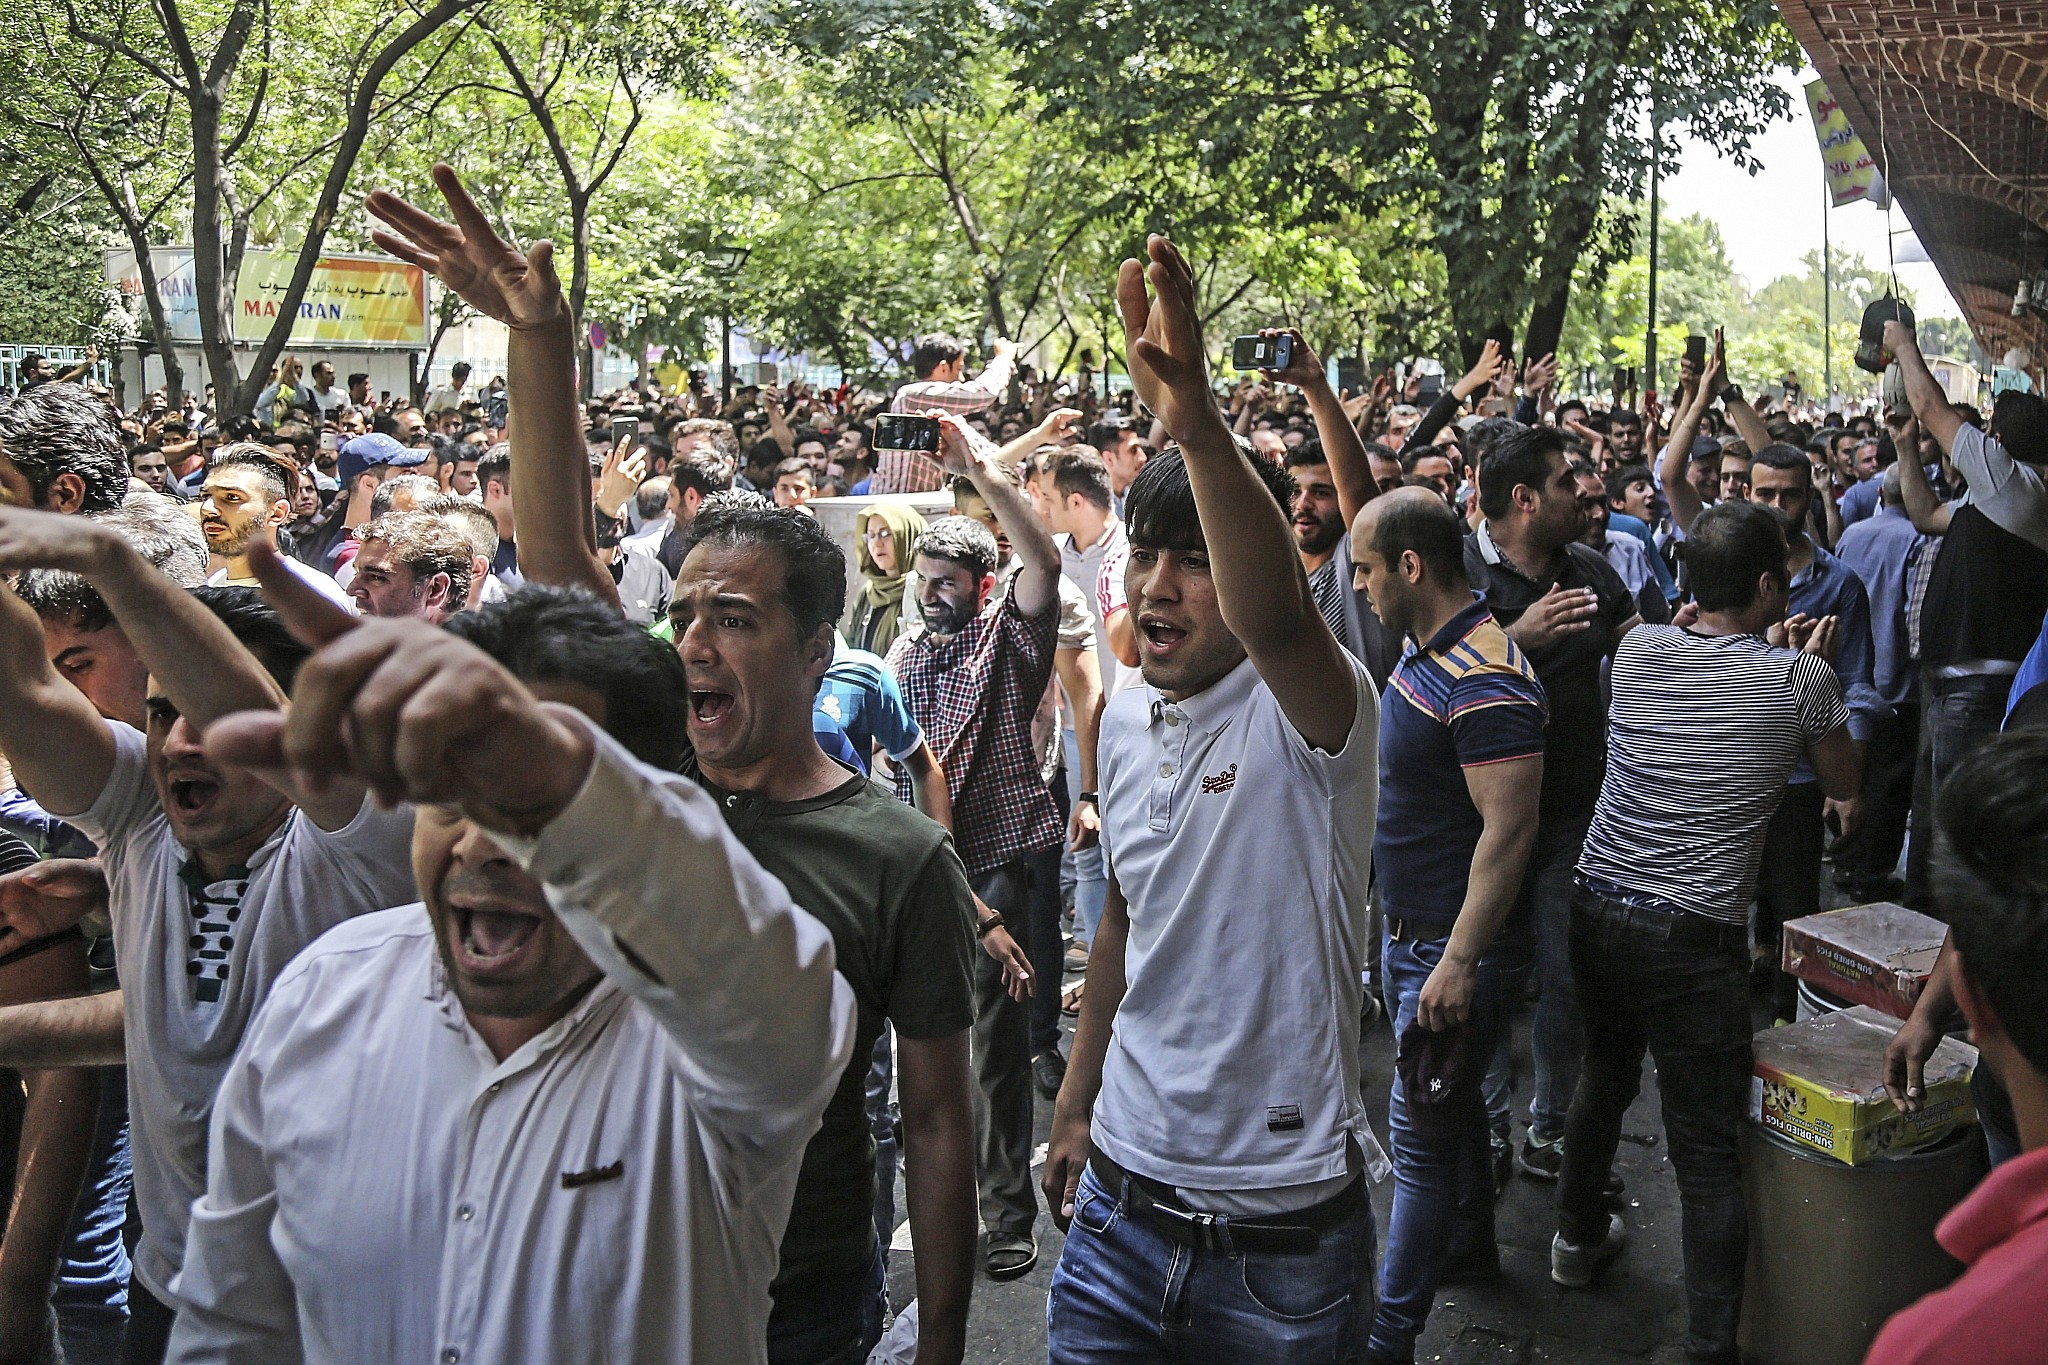 Iranian Crowds Chant 'Death To Israel,' 'Down With U.S.'